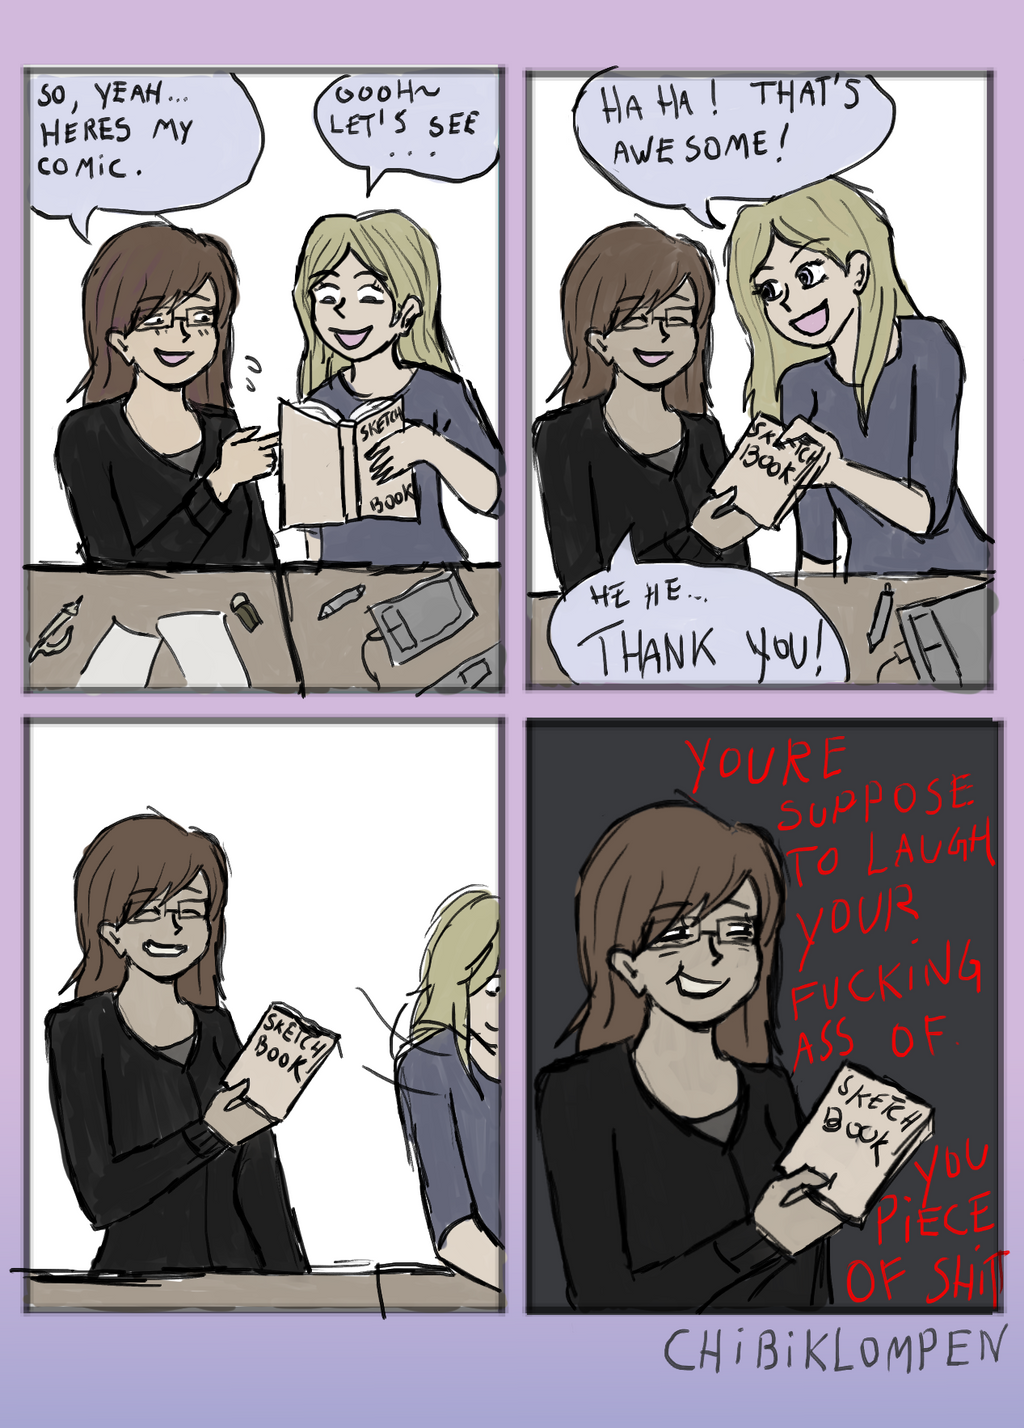 Showing your comic to people like by Chibiklompen